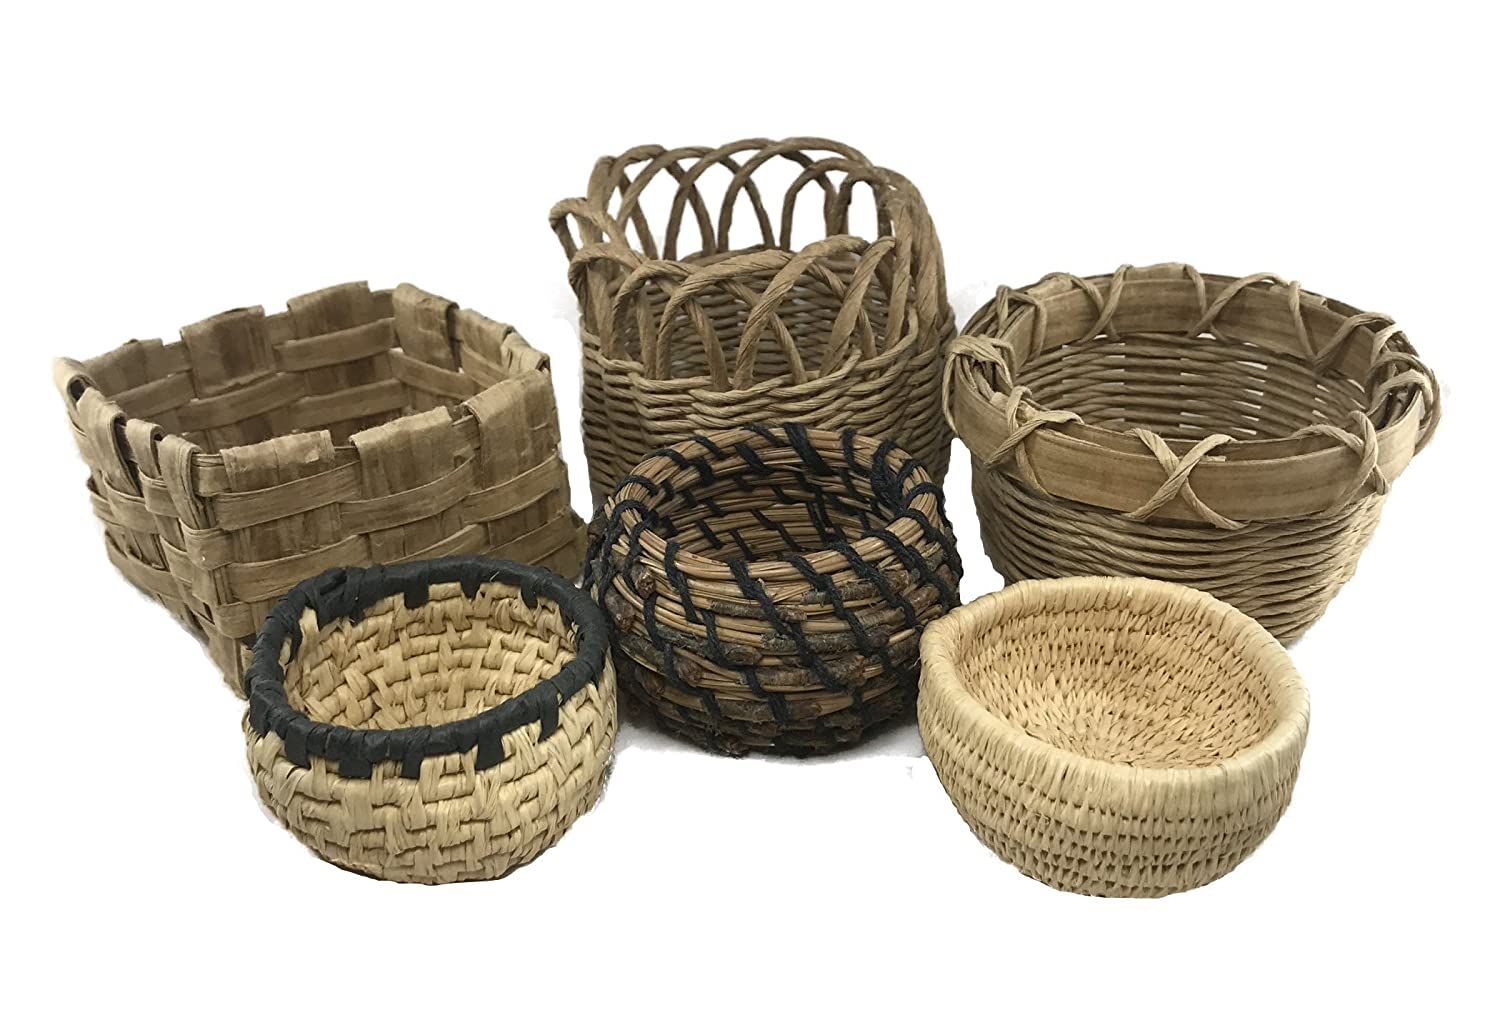 Beginner Basket Kit - Complete Set Traditional Craft Kits CBMA